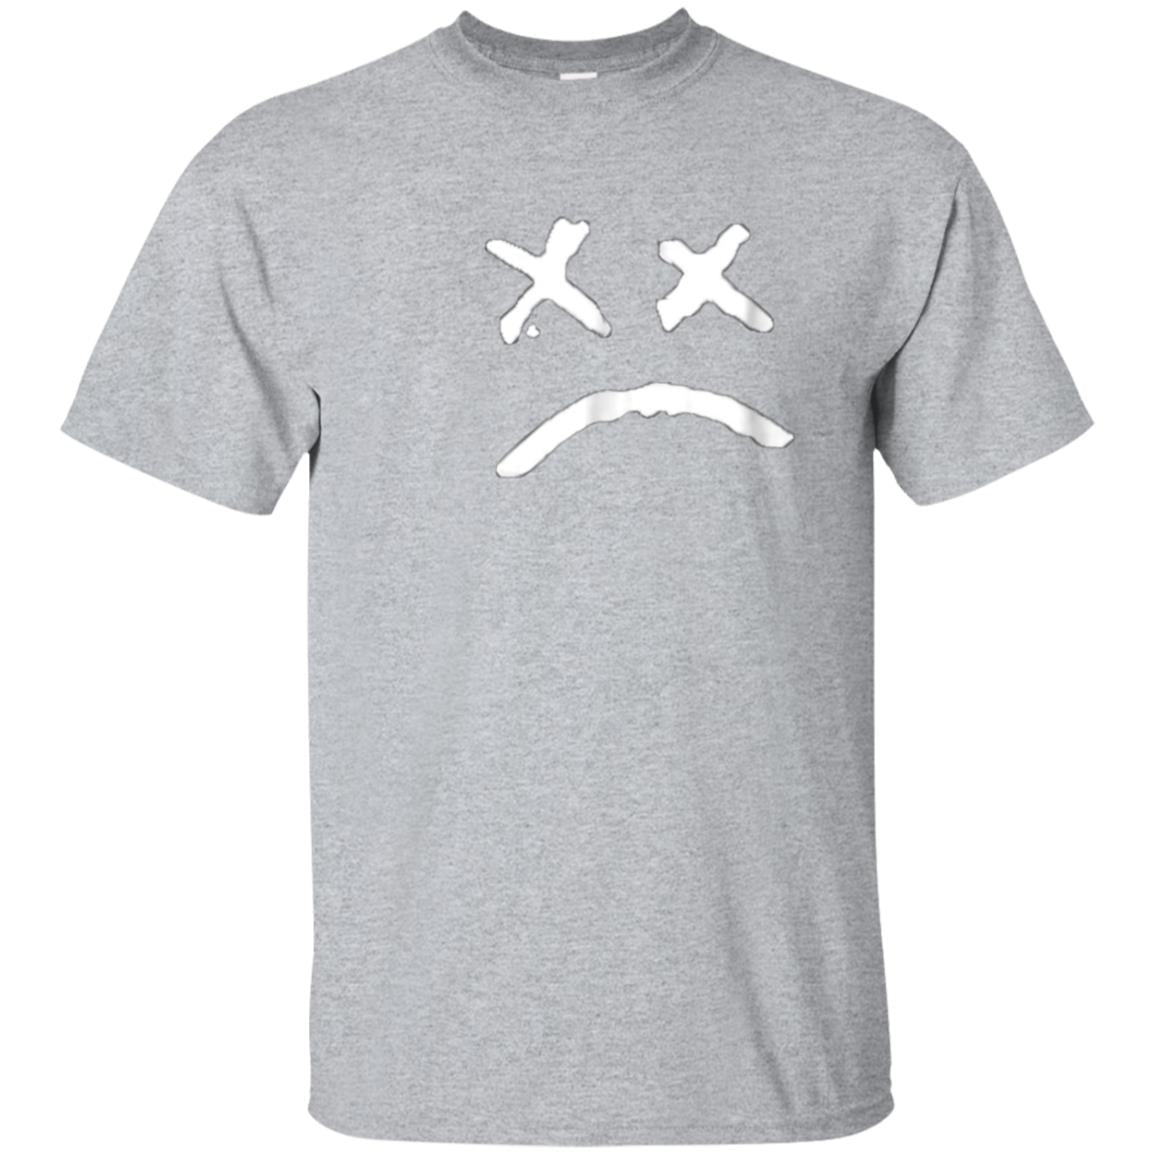 Lil-Peep Rapper Sad Face Gift Shirt 99promocode